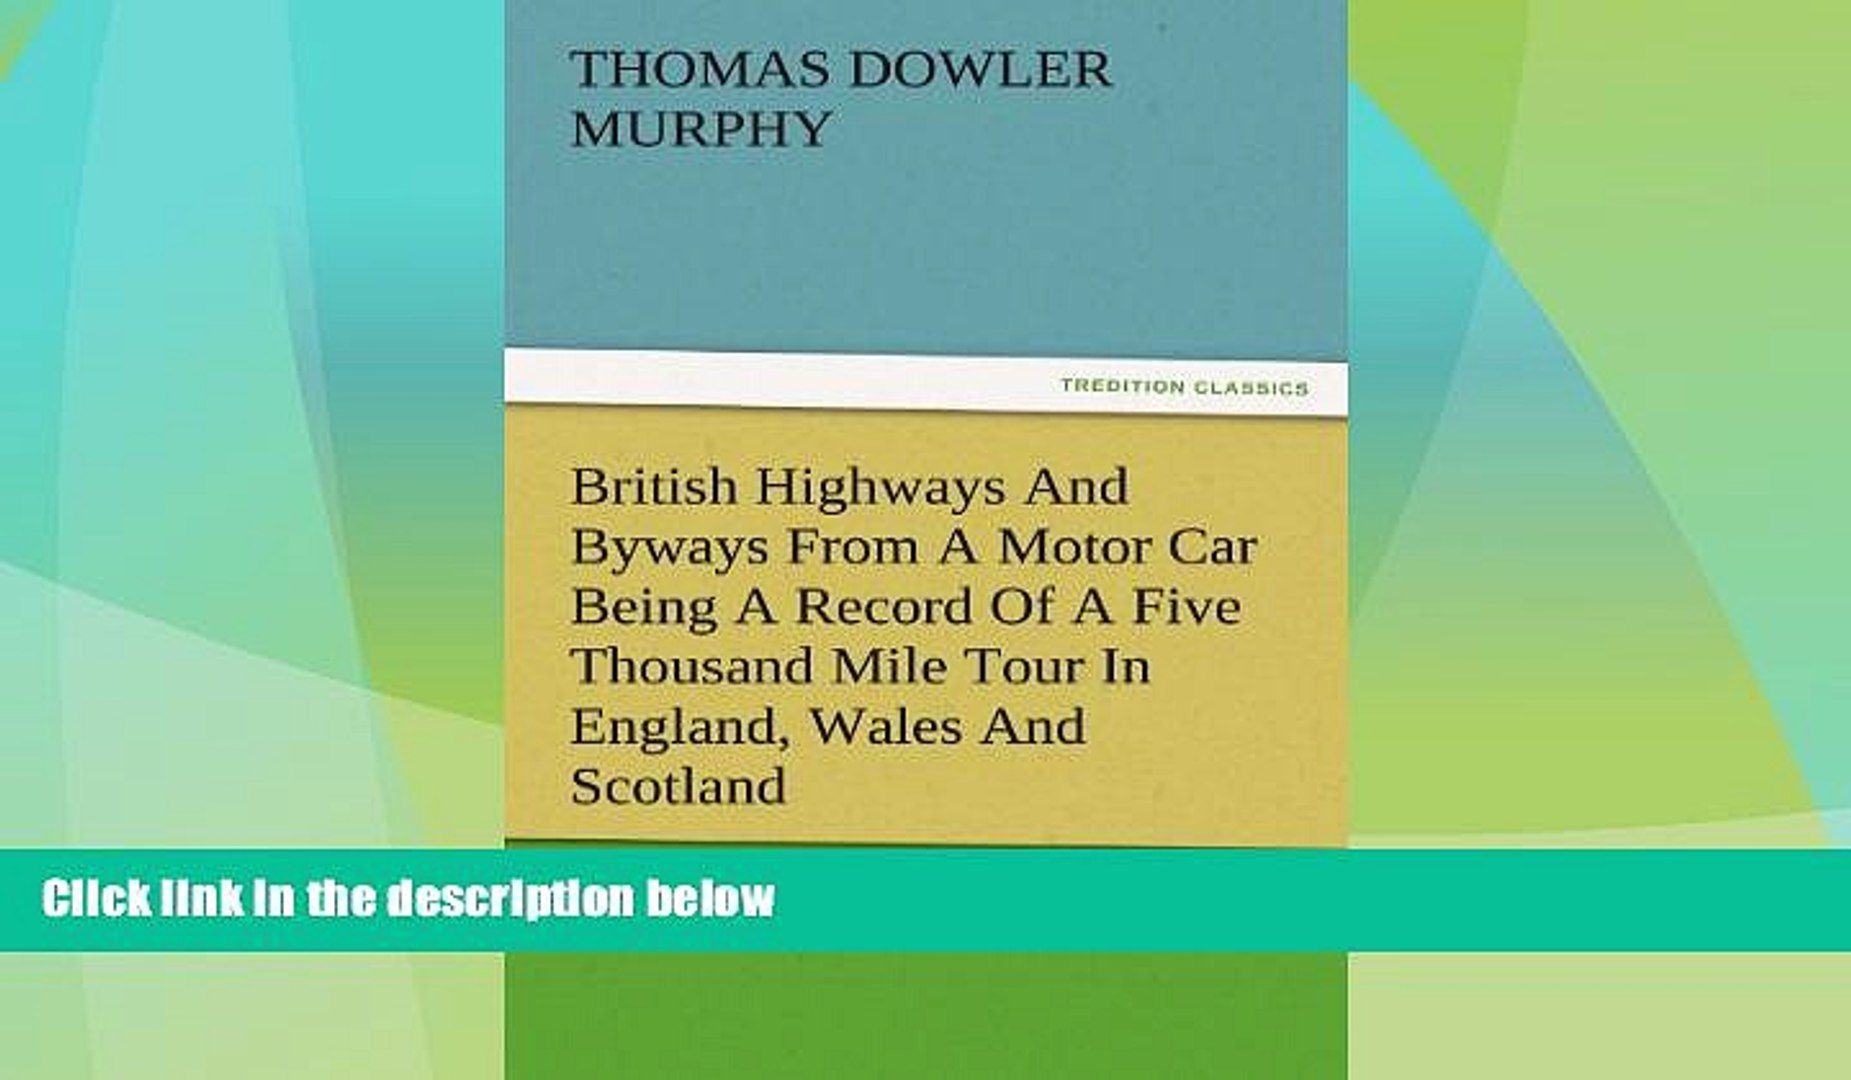 Buy NOW  British Highways And Byways From A Motor Car Being A Record Of A Five Thousand Mile Tour